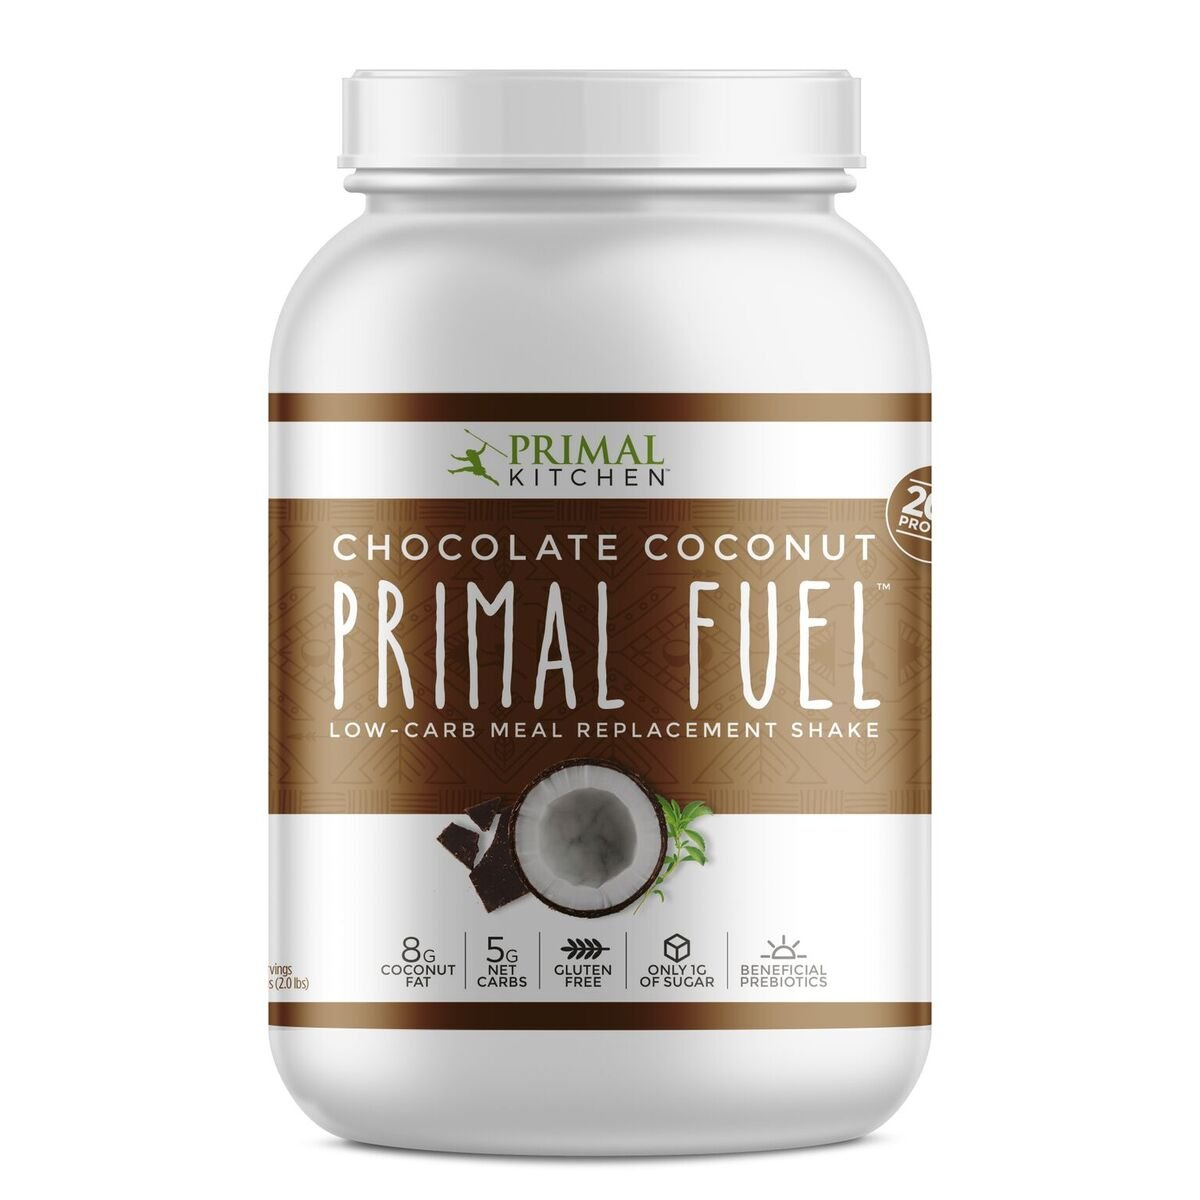 Primal Kitchen - Primal Fuel Whey Protein Powder, Low Carb Meal Replacement Supports Weight Loss (Chocolate Coconut, 32 oz)